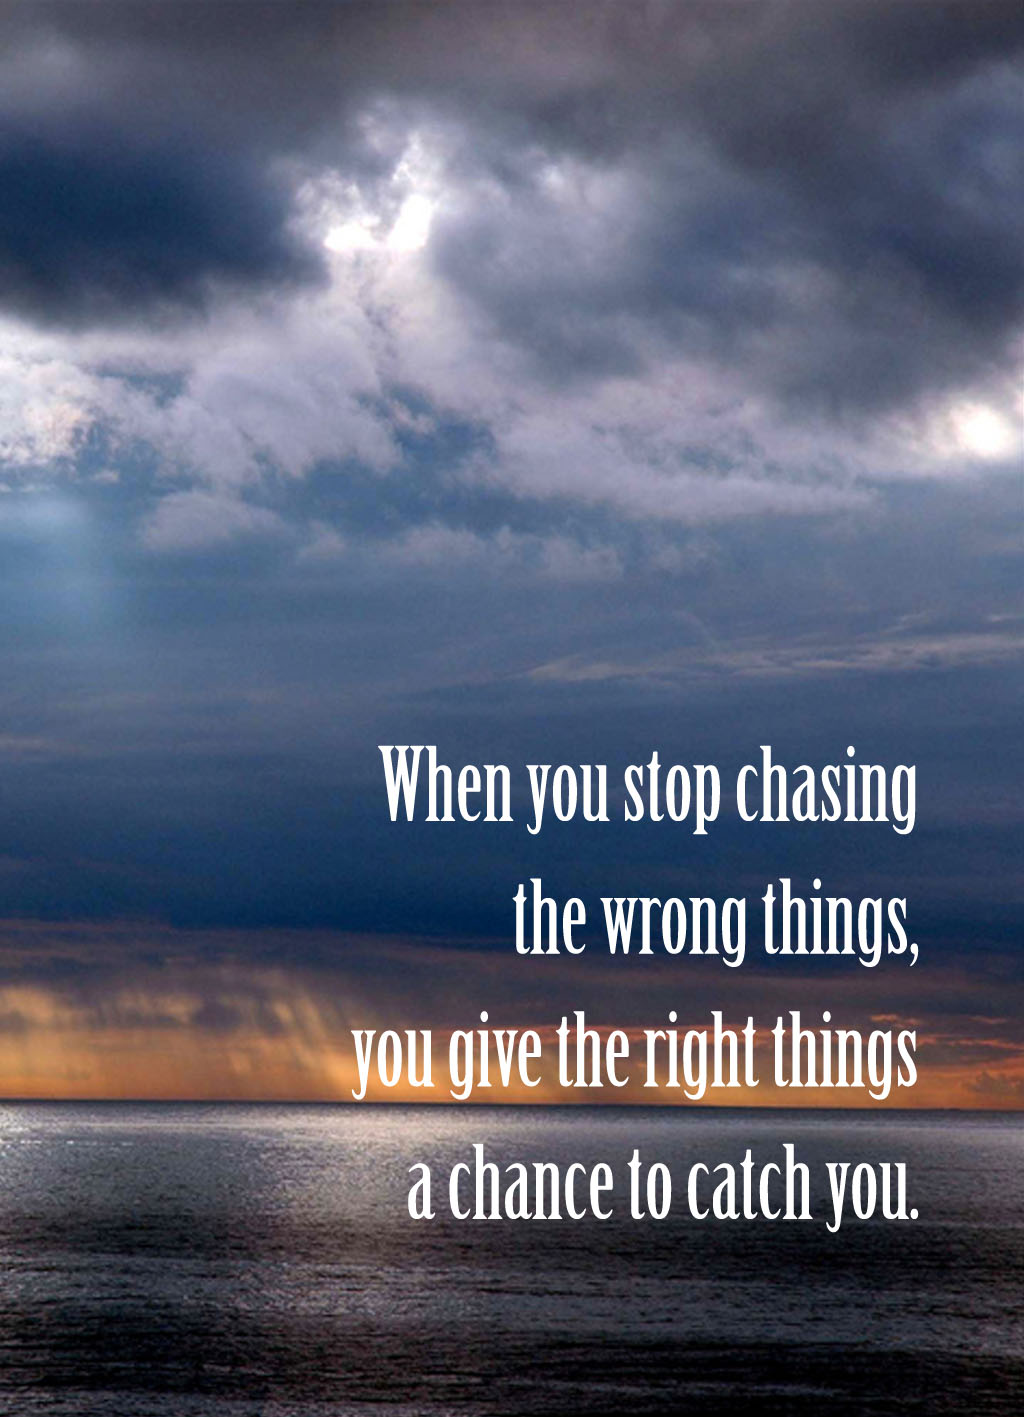 Quote of the Day :: When you stop chasing the wrong things, you give the right things a chance to catch you